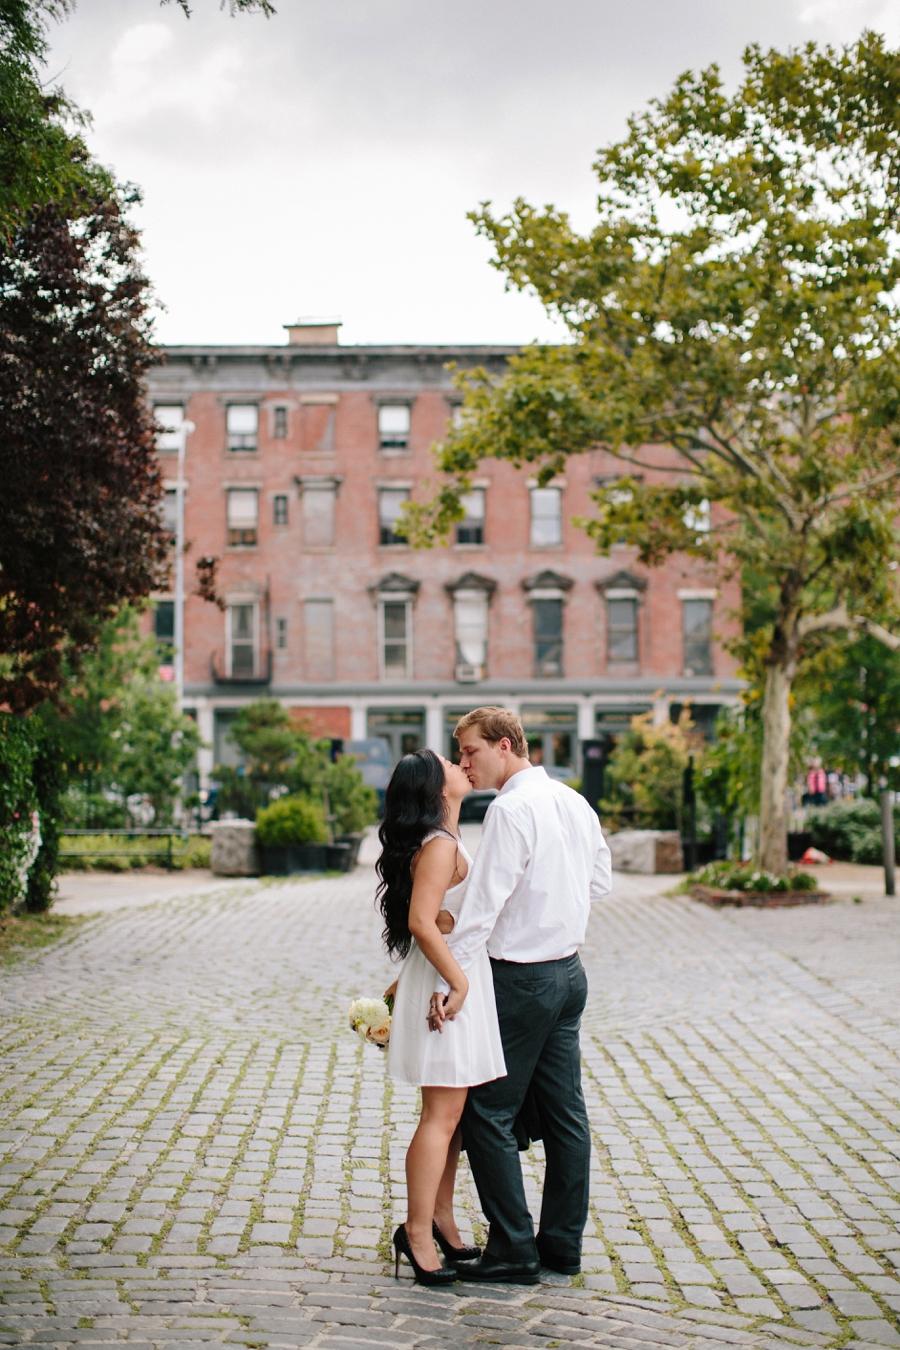 elopement-wedding-photographer-ny-nj-destination_0031.jpg